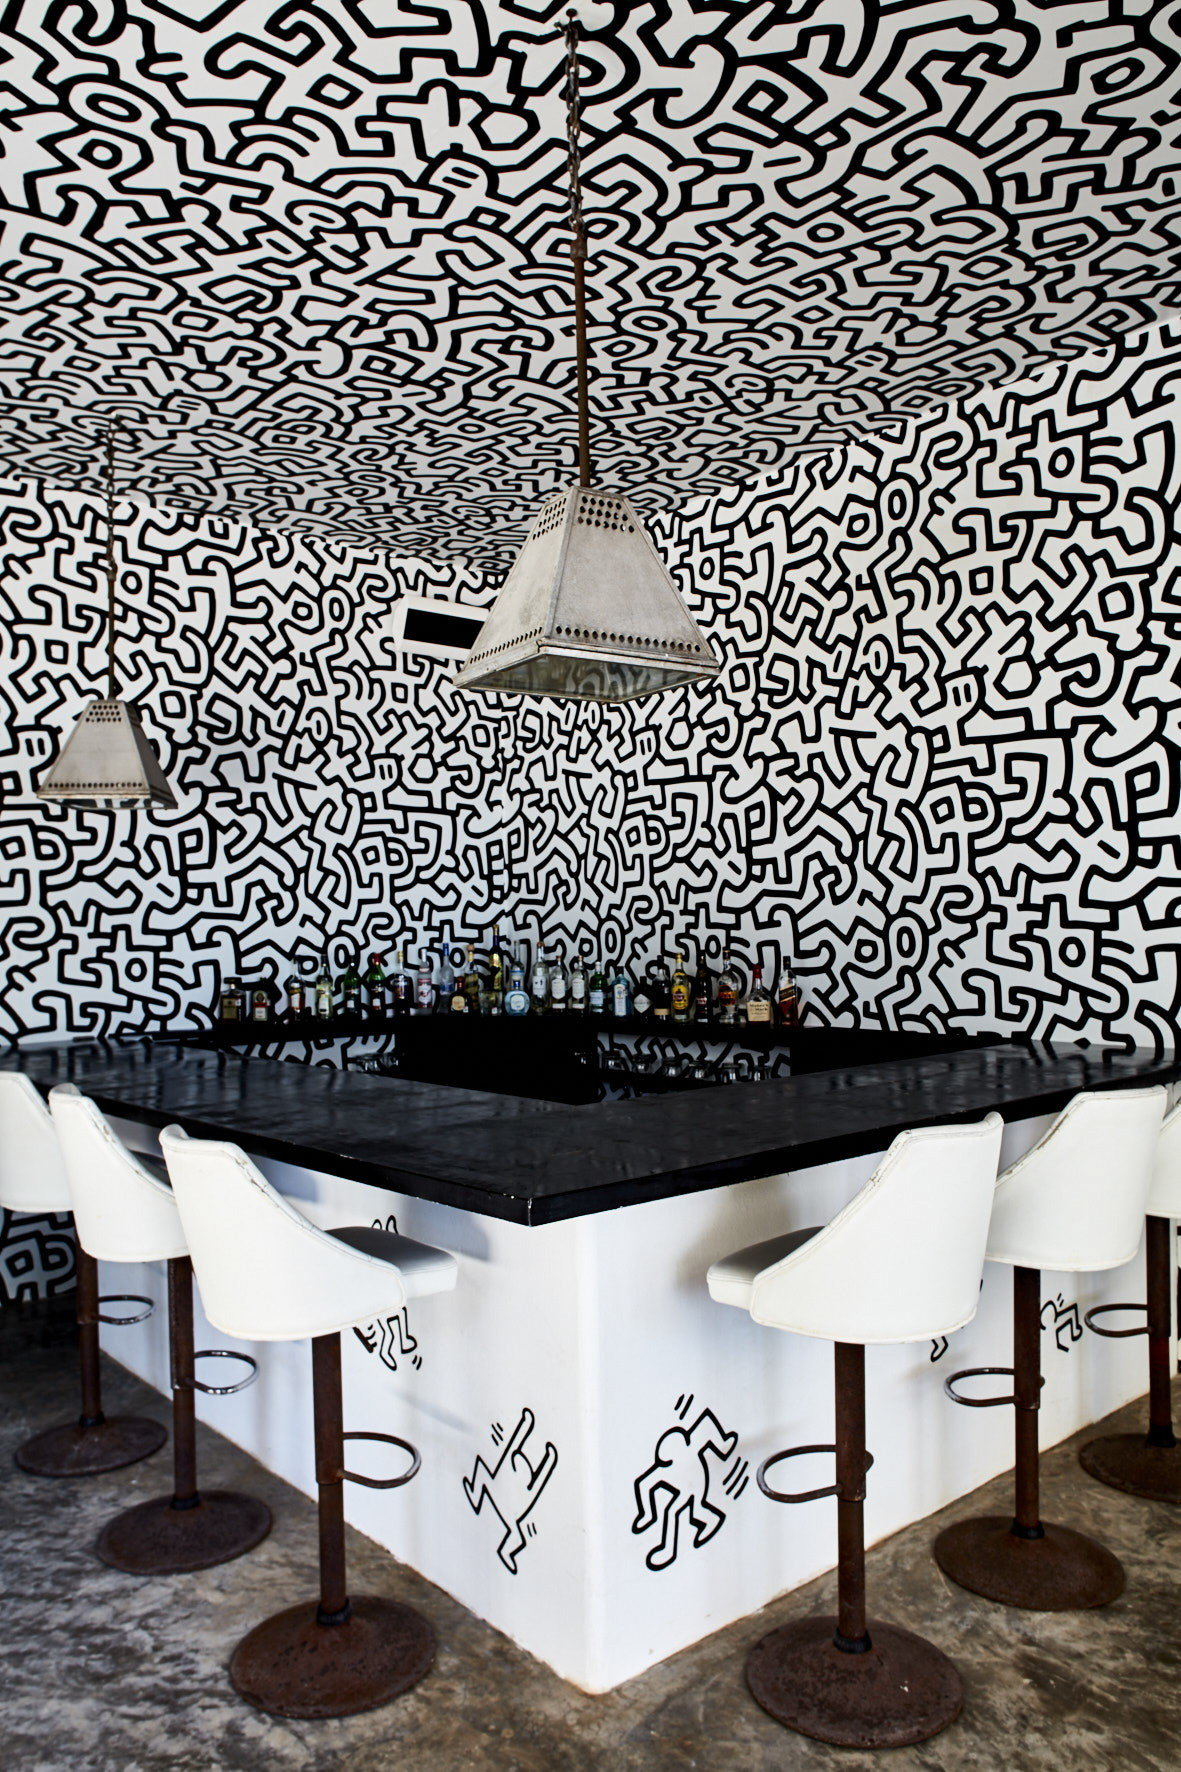 Boutique Hotels Hotels Mexico Tulum wall table furniture interior design chair Design product design pattern wallpaper lighting accessory flooring tablecloth floor